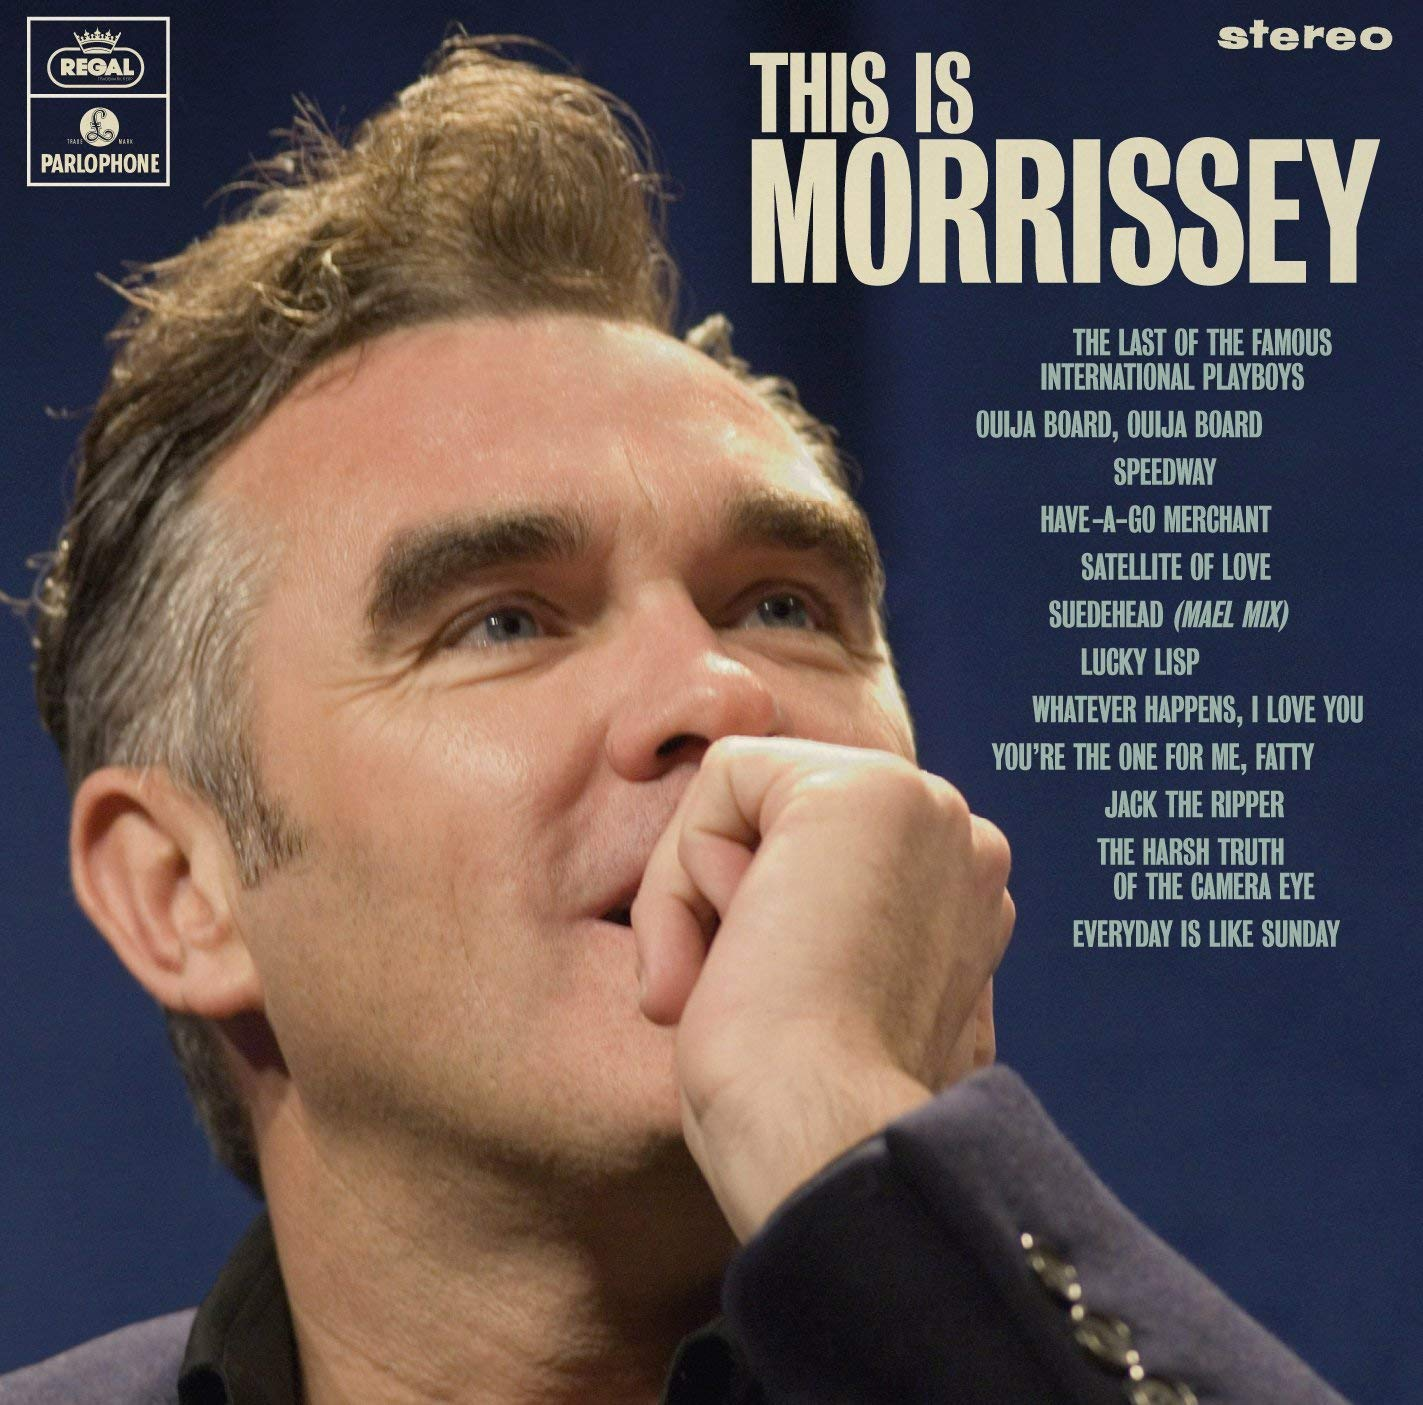 Review: Morrissey - This Is Morrissey